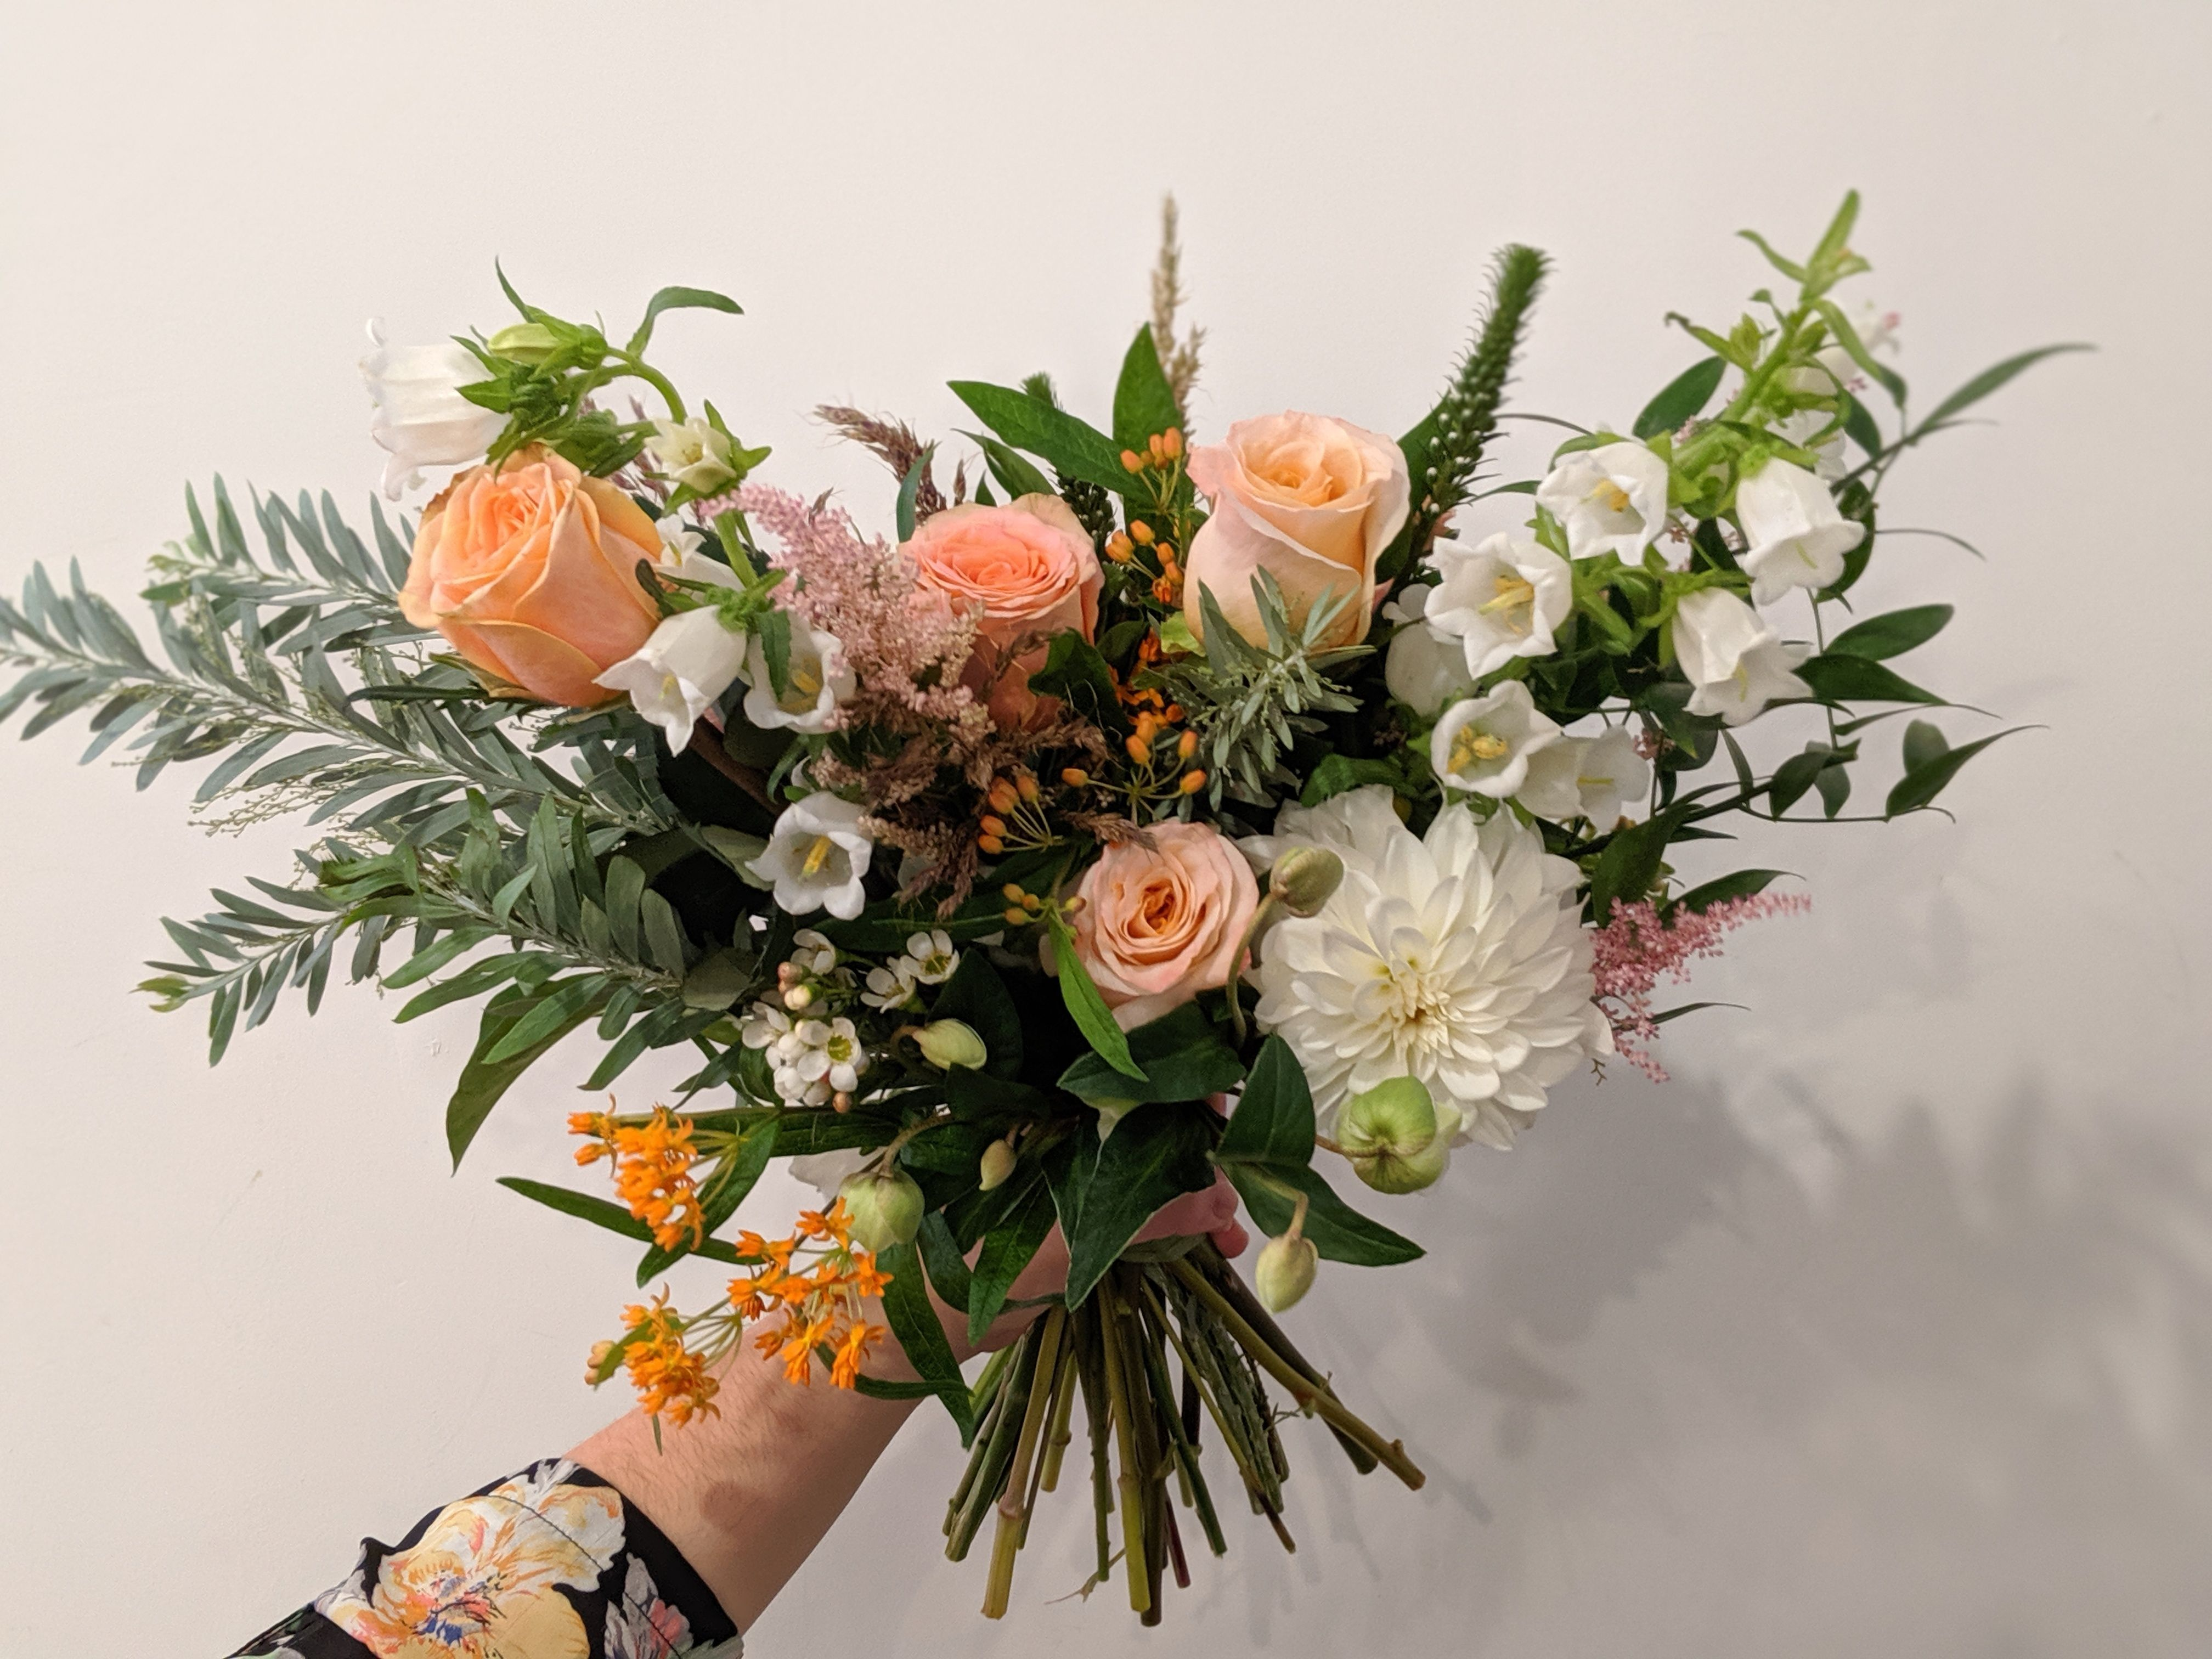 Whimsical peach and white summer bridal bouquet by Adore Floral